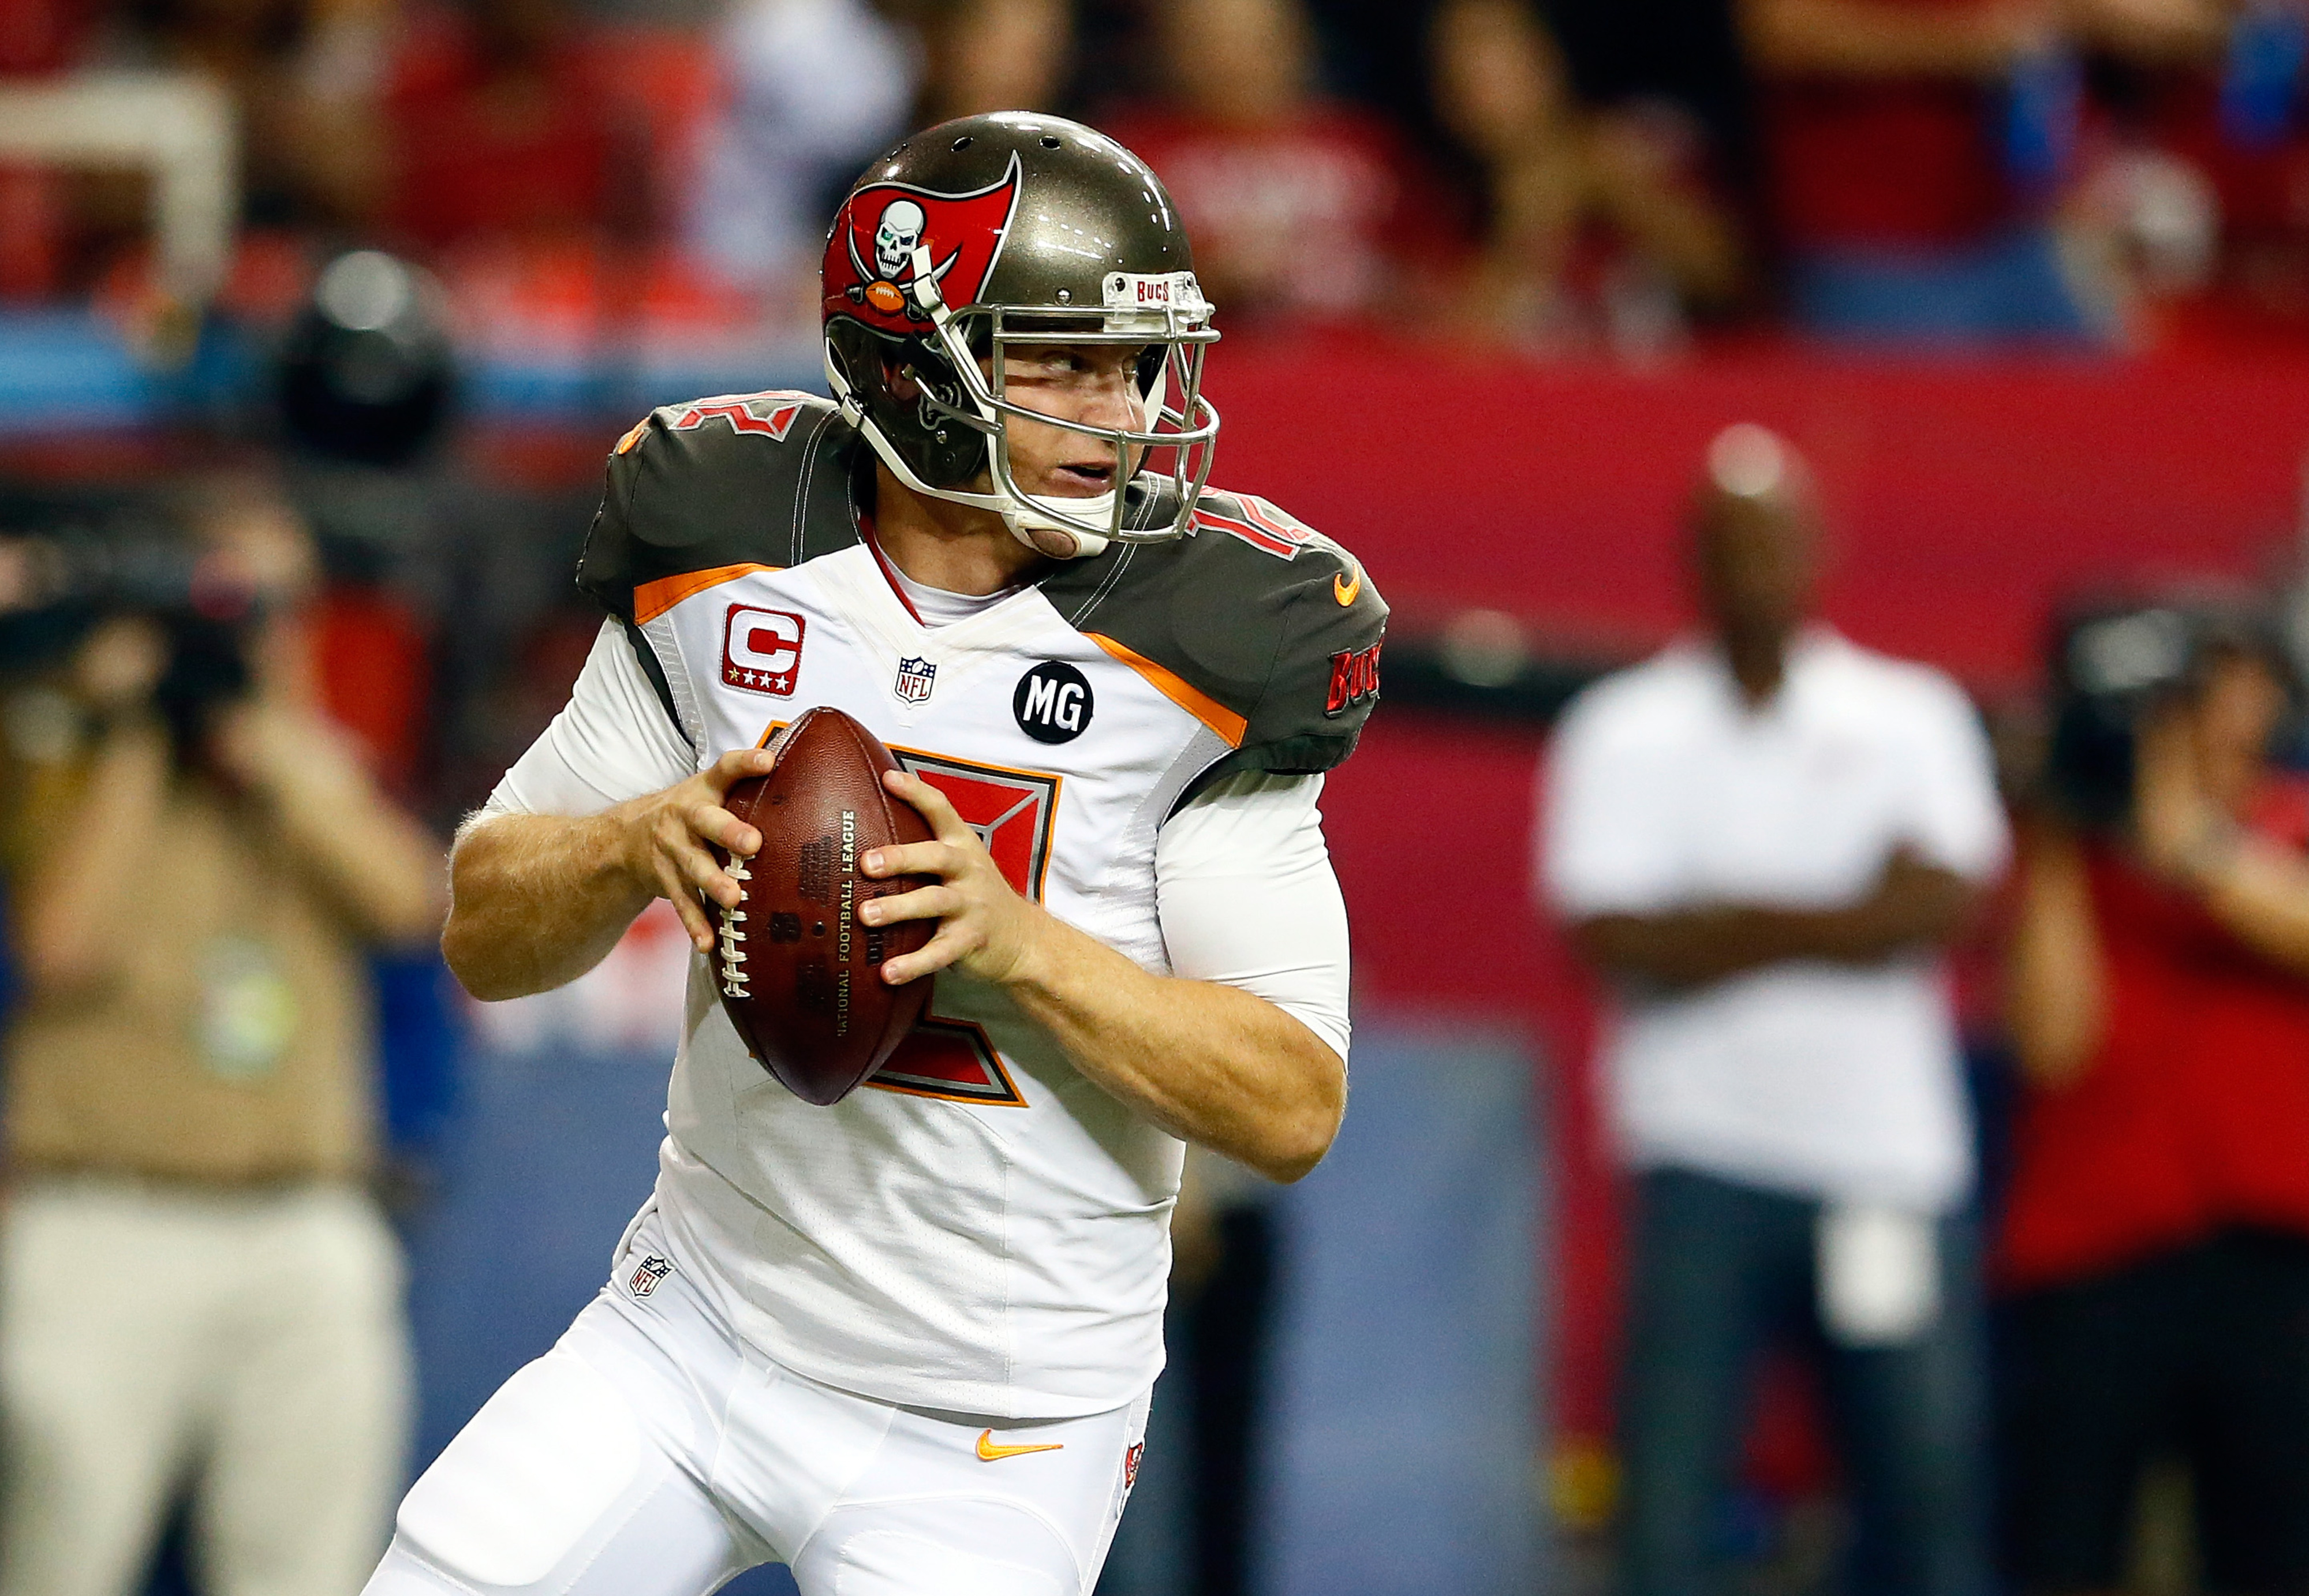 Josh McCown leaves game with apparent hand injury